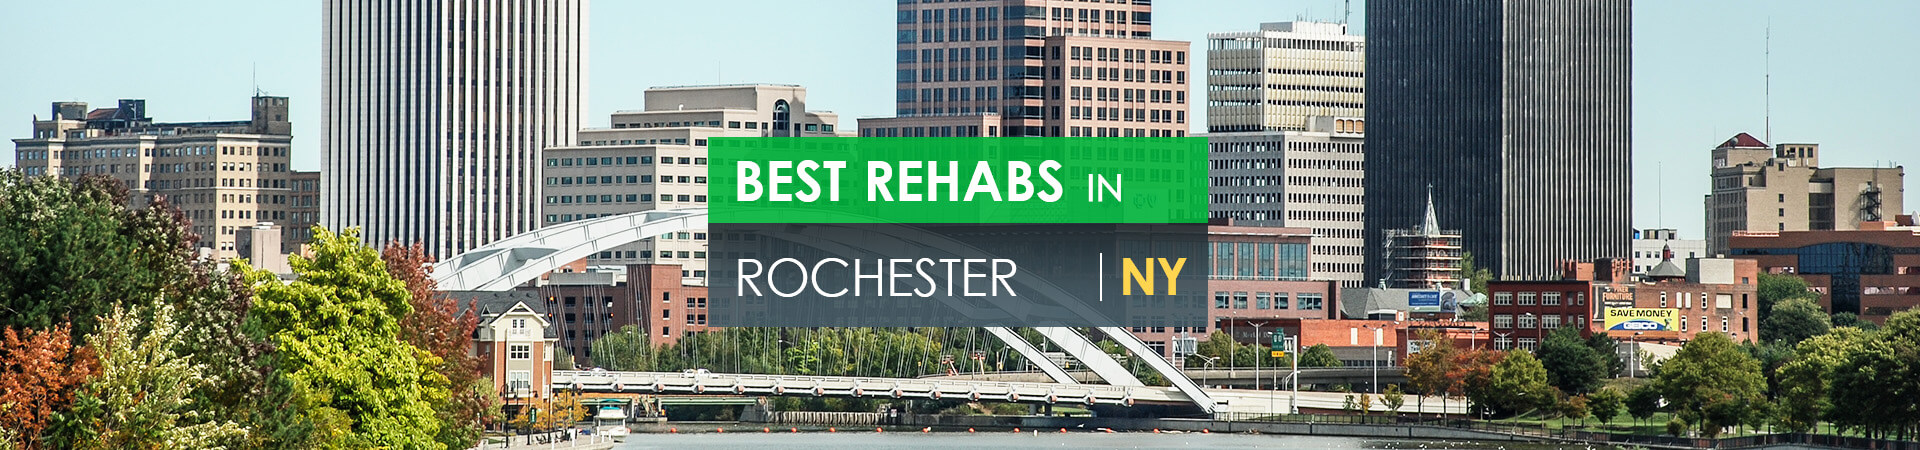 Best rehabs in Rochester, NY